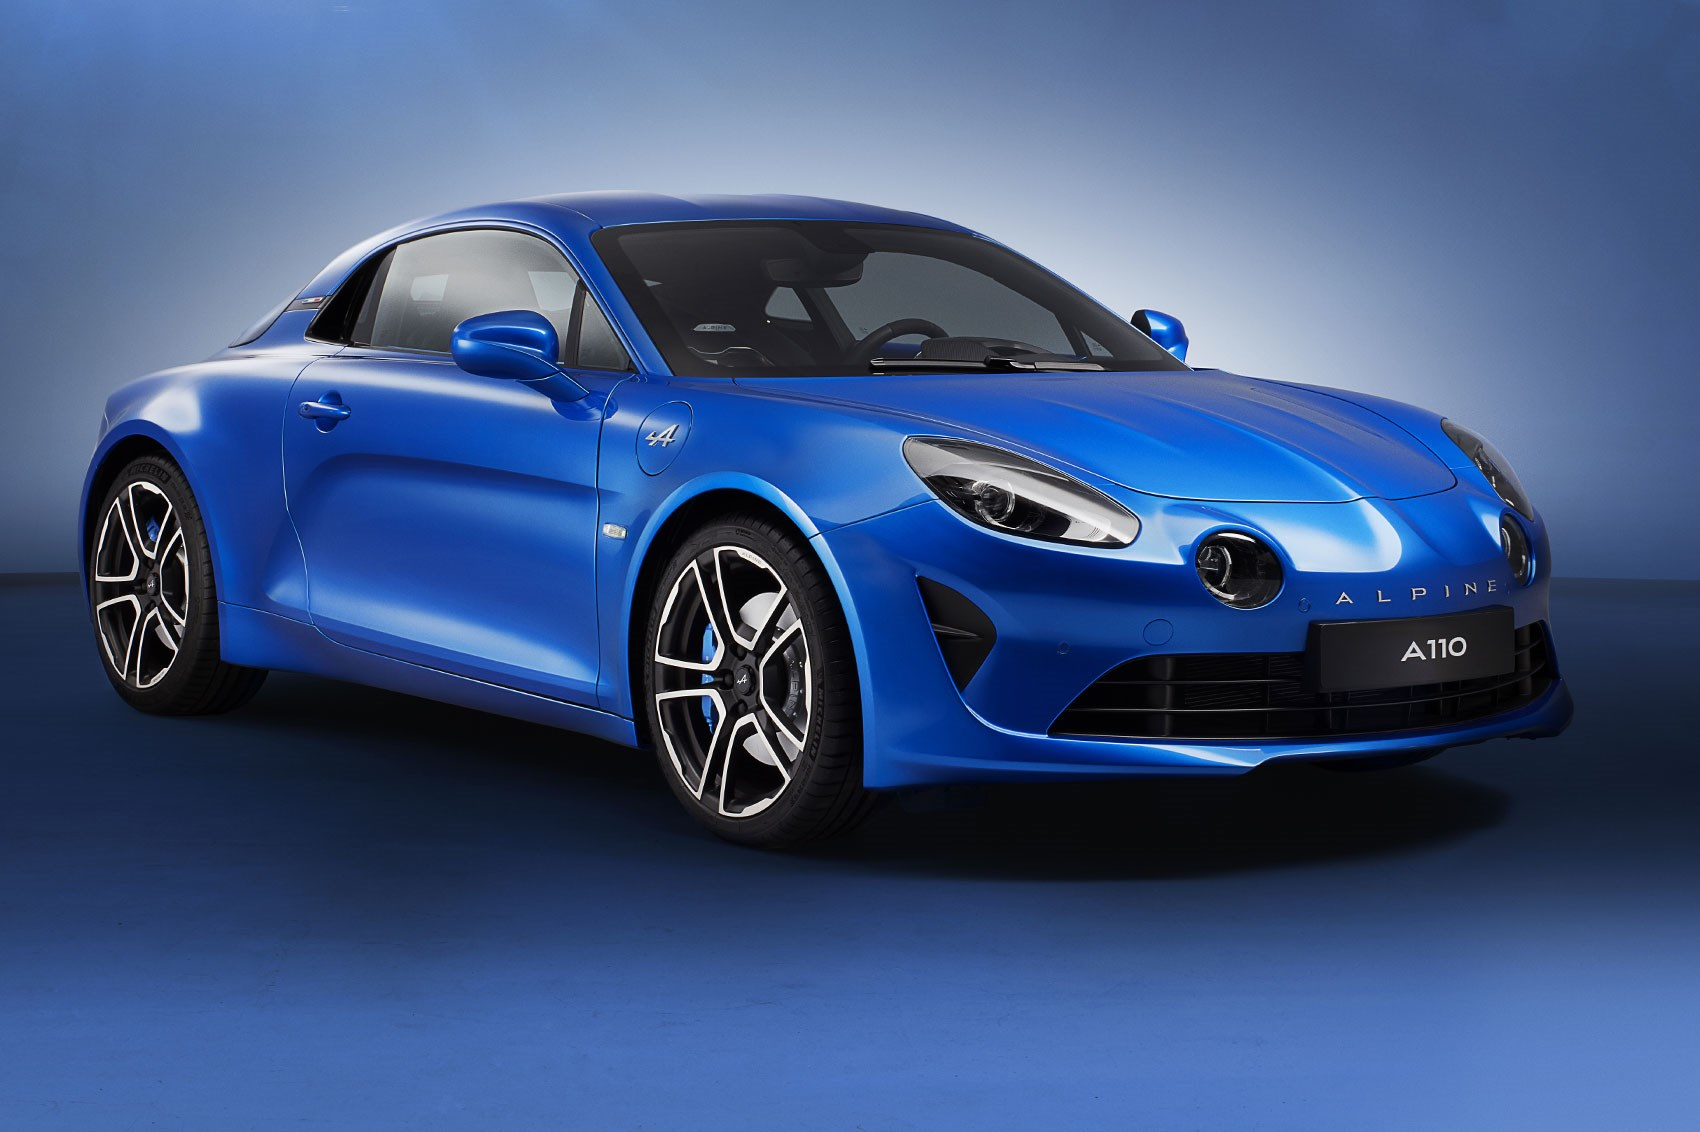 Subaru Goes Big In America With New Ascent Suv Concept Car Magazine Under The Hood On Driver S Side Of Vehicle See Diagram Below Alpine A110 At Geneva 2017